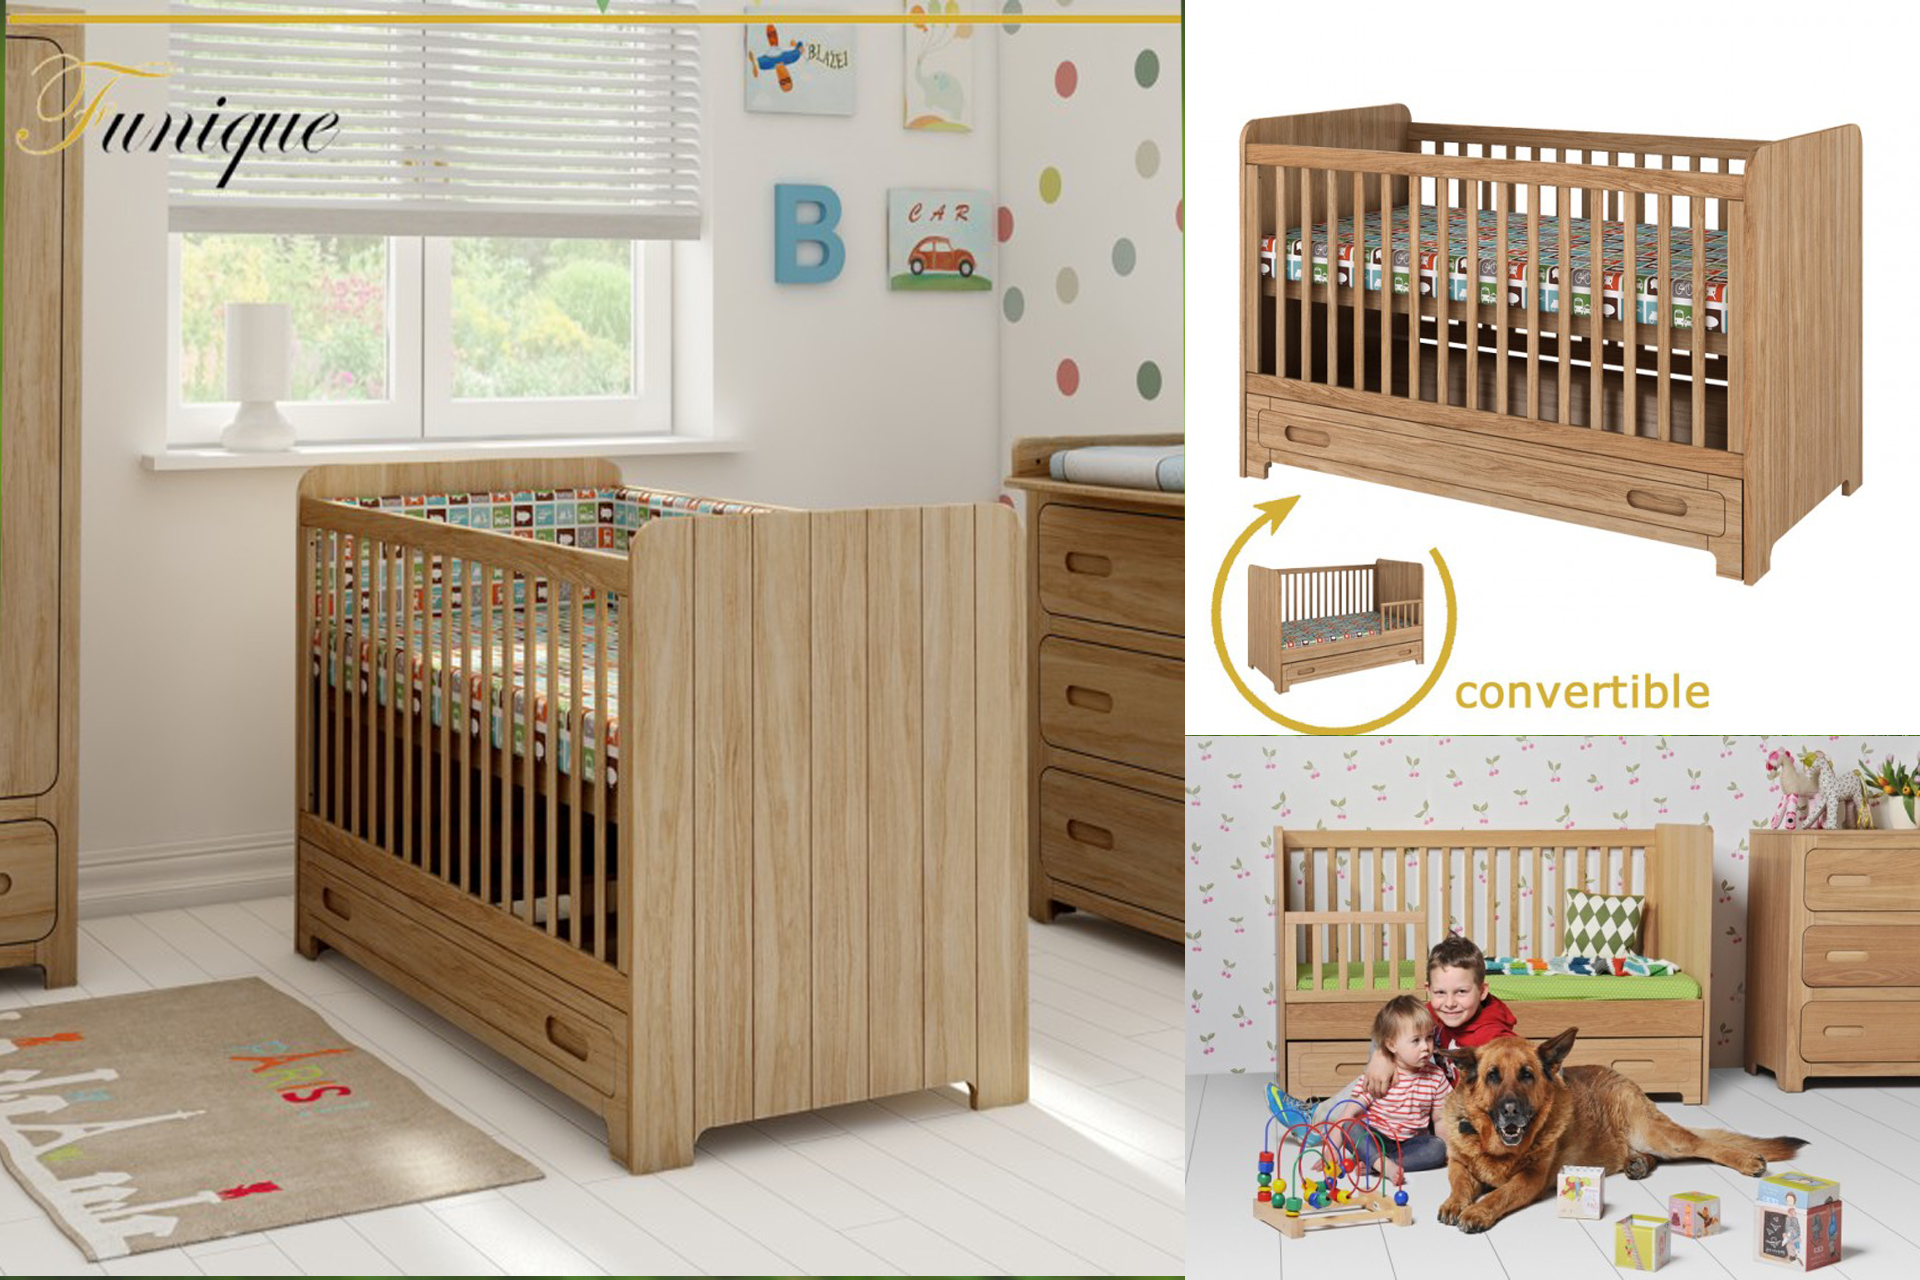 Baby bed in parents room - 2 Safety Considerations